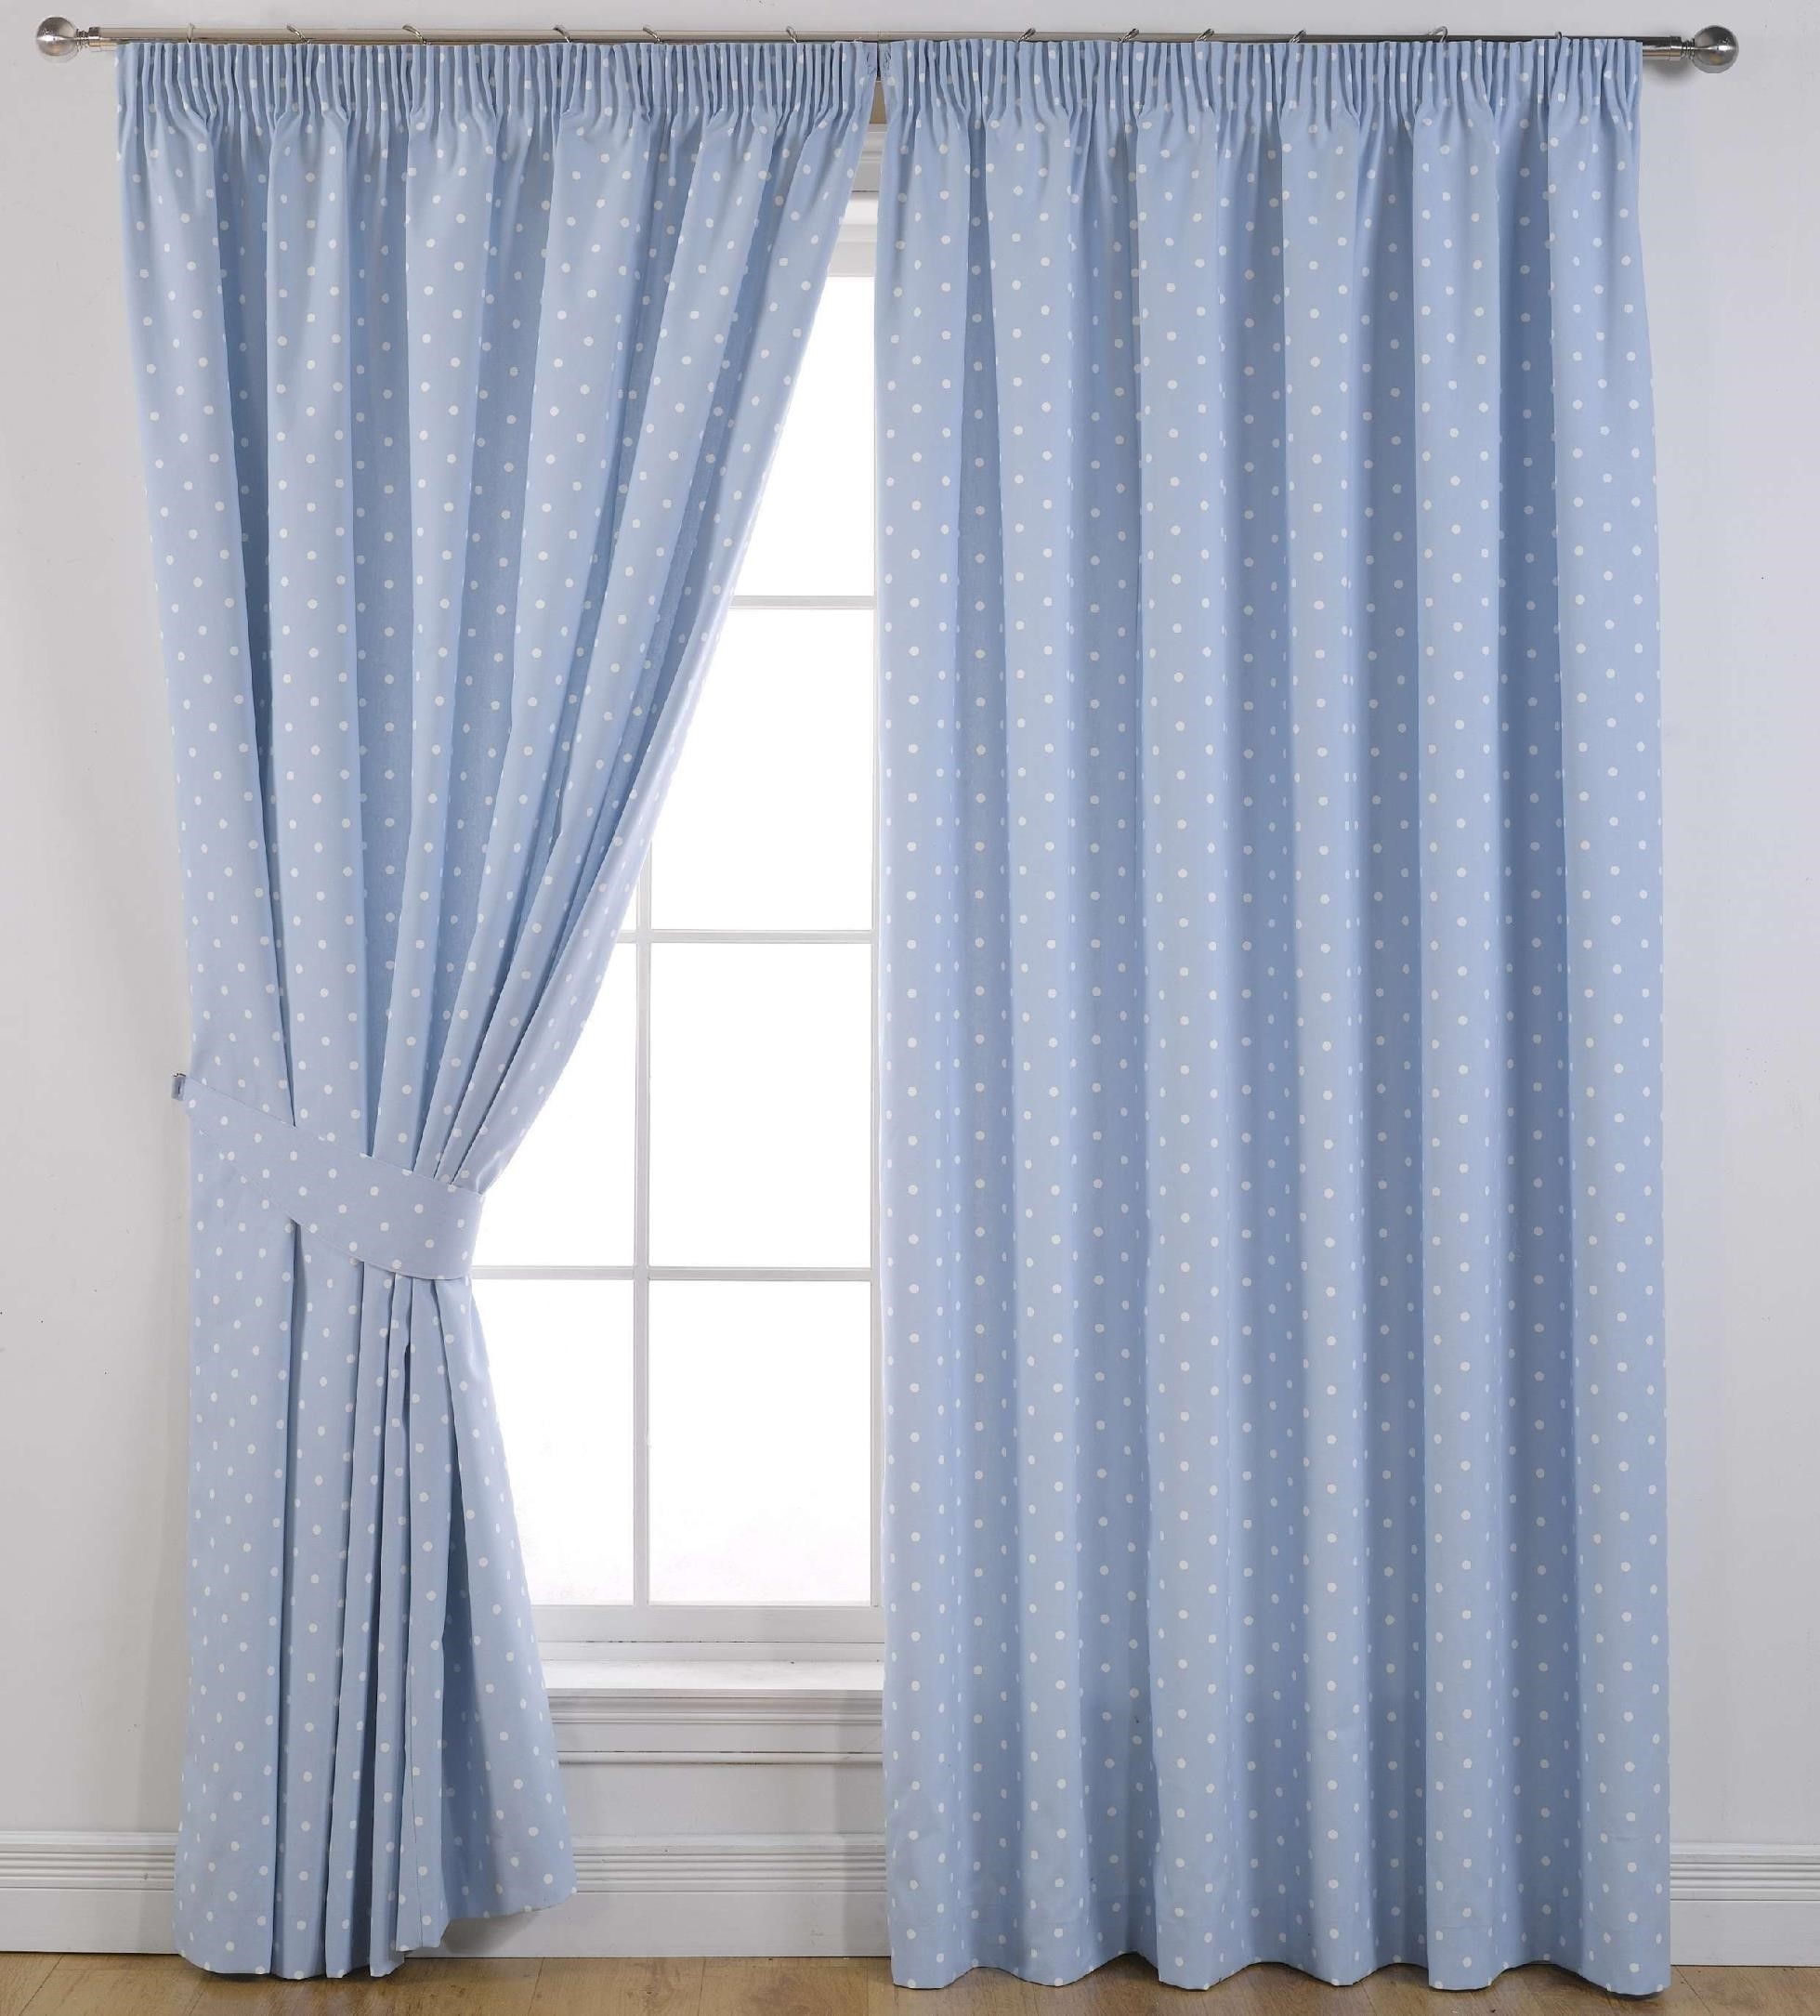 Curtains Eyelet Lined Julian Charles Luxury White Blackout Regarding Blue Blackout Curtains Eyelet (Image 3 of 15)